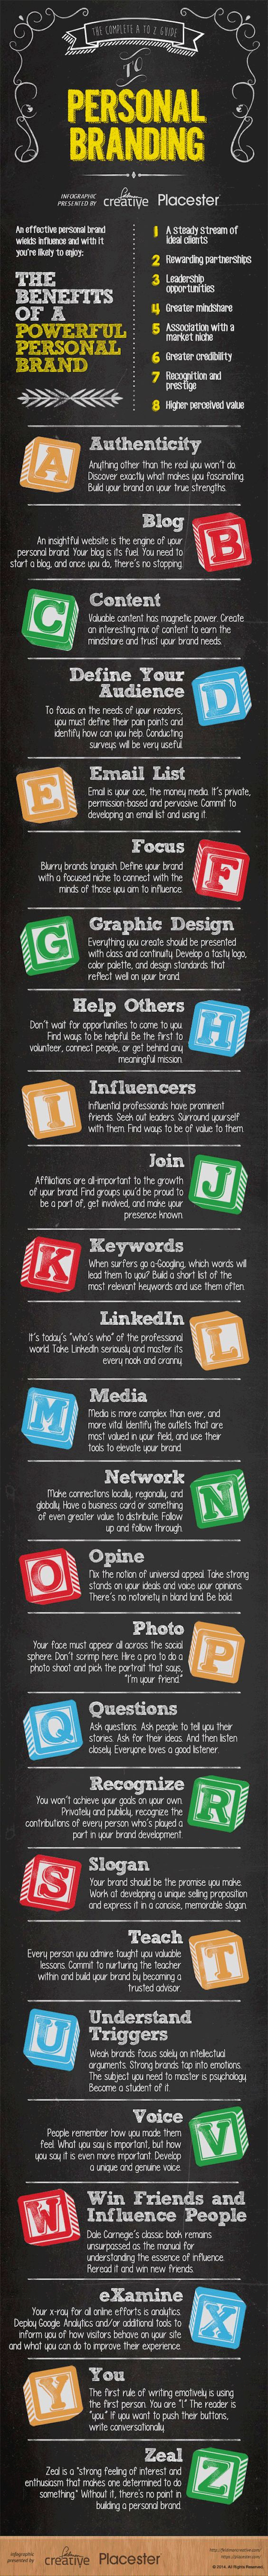 Make sure you've got all the elements of a solid personal brand. Infographic by @Feldman Creative and @Placester.